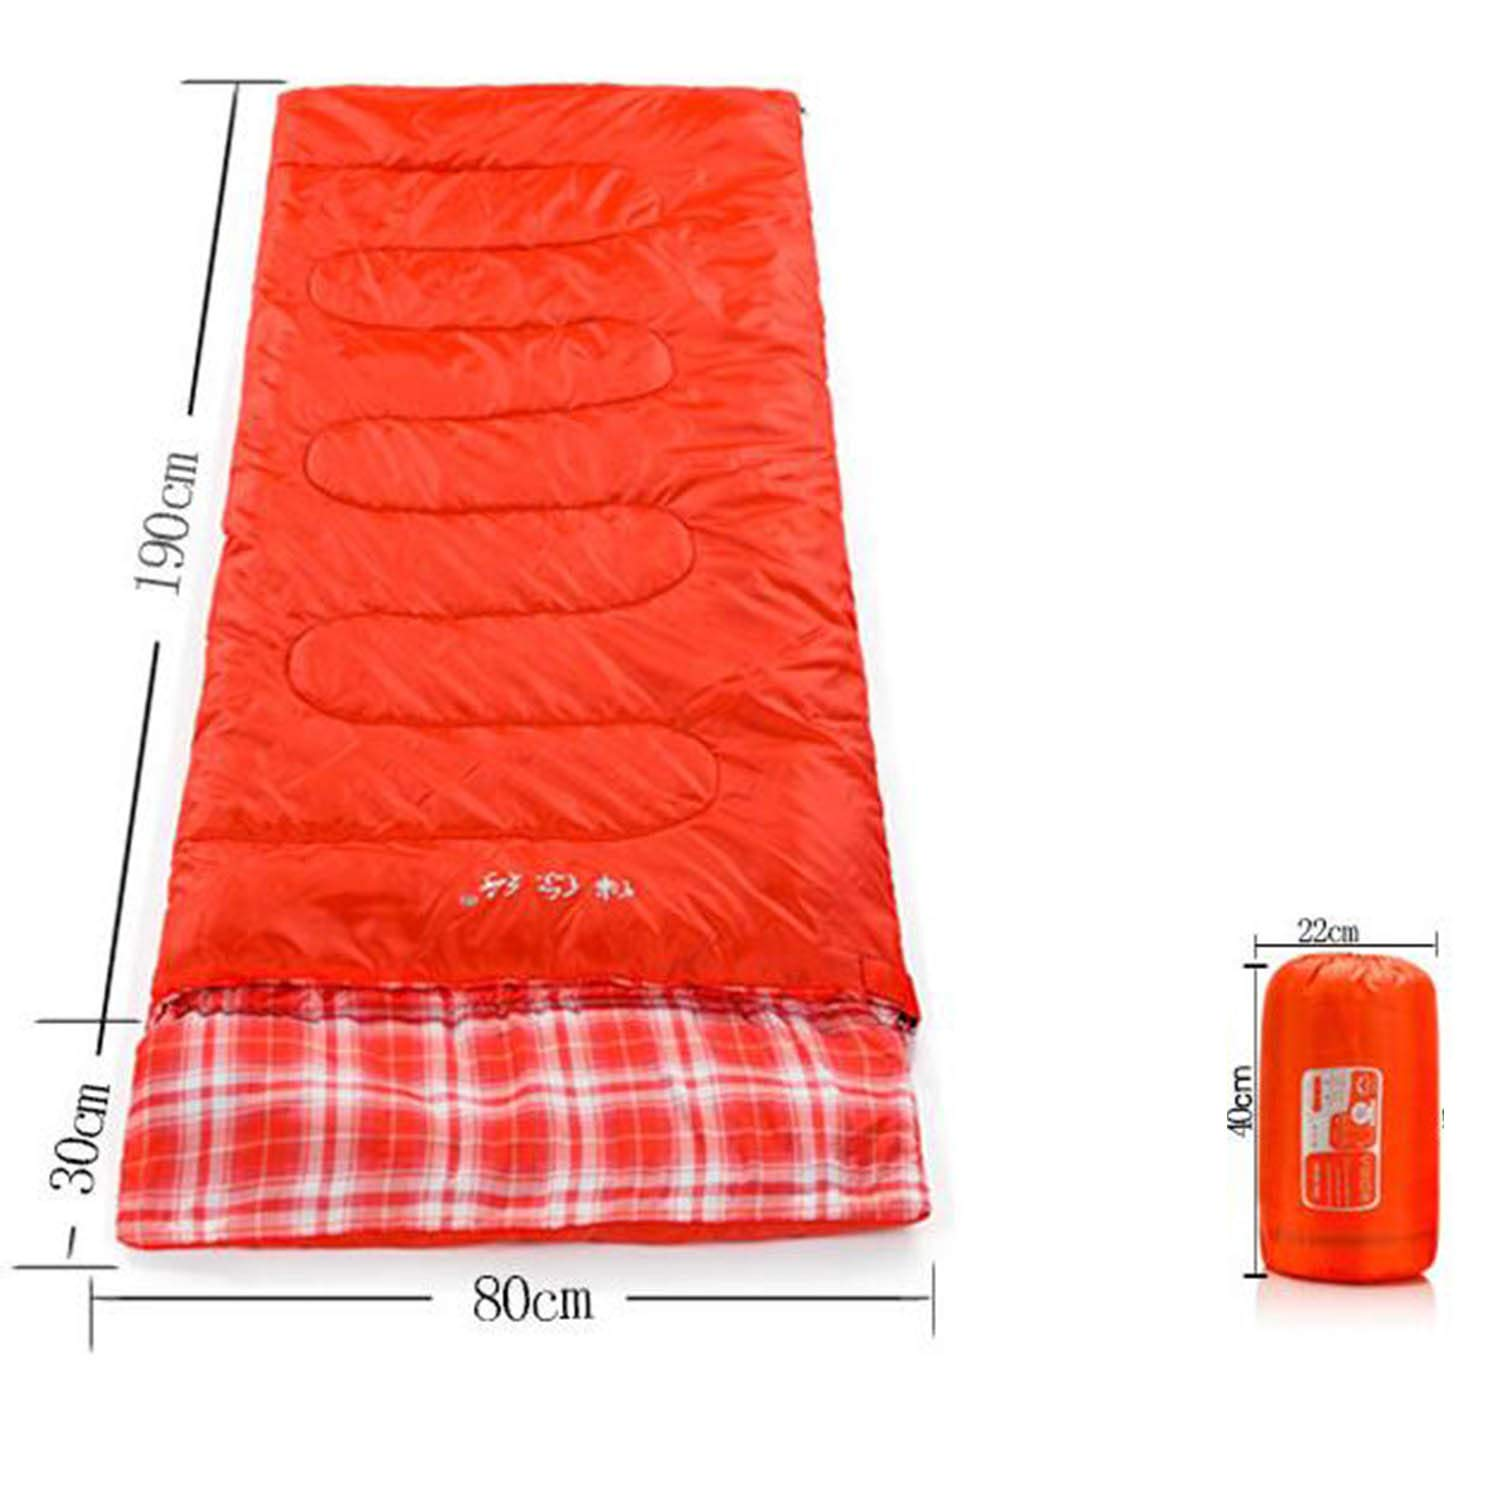 LNYF-OV Sleeping Bag Outdoor Adult Winter Warm Spring Autumn Super Light Extra Long Indoor Party, Moisture Proof Compression Bag, ROT, Größe: 220  80cm